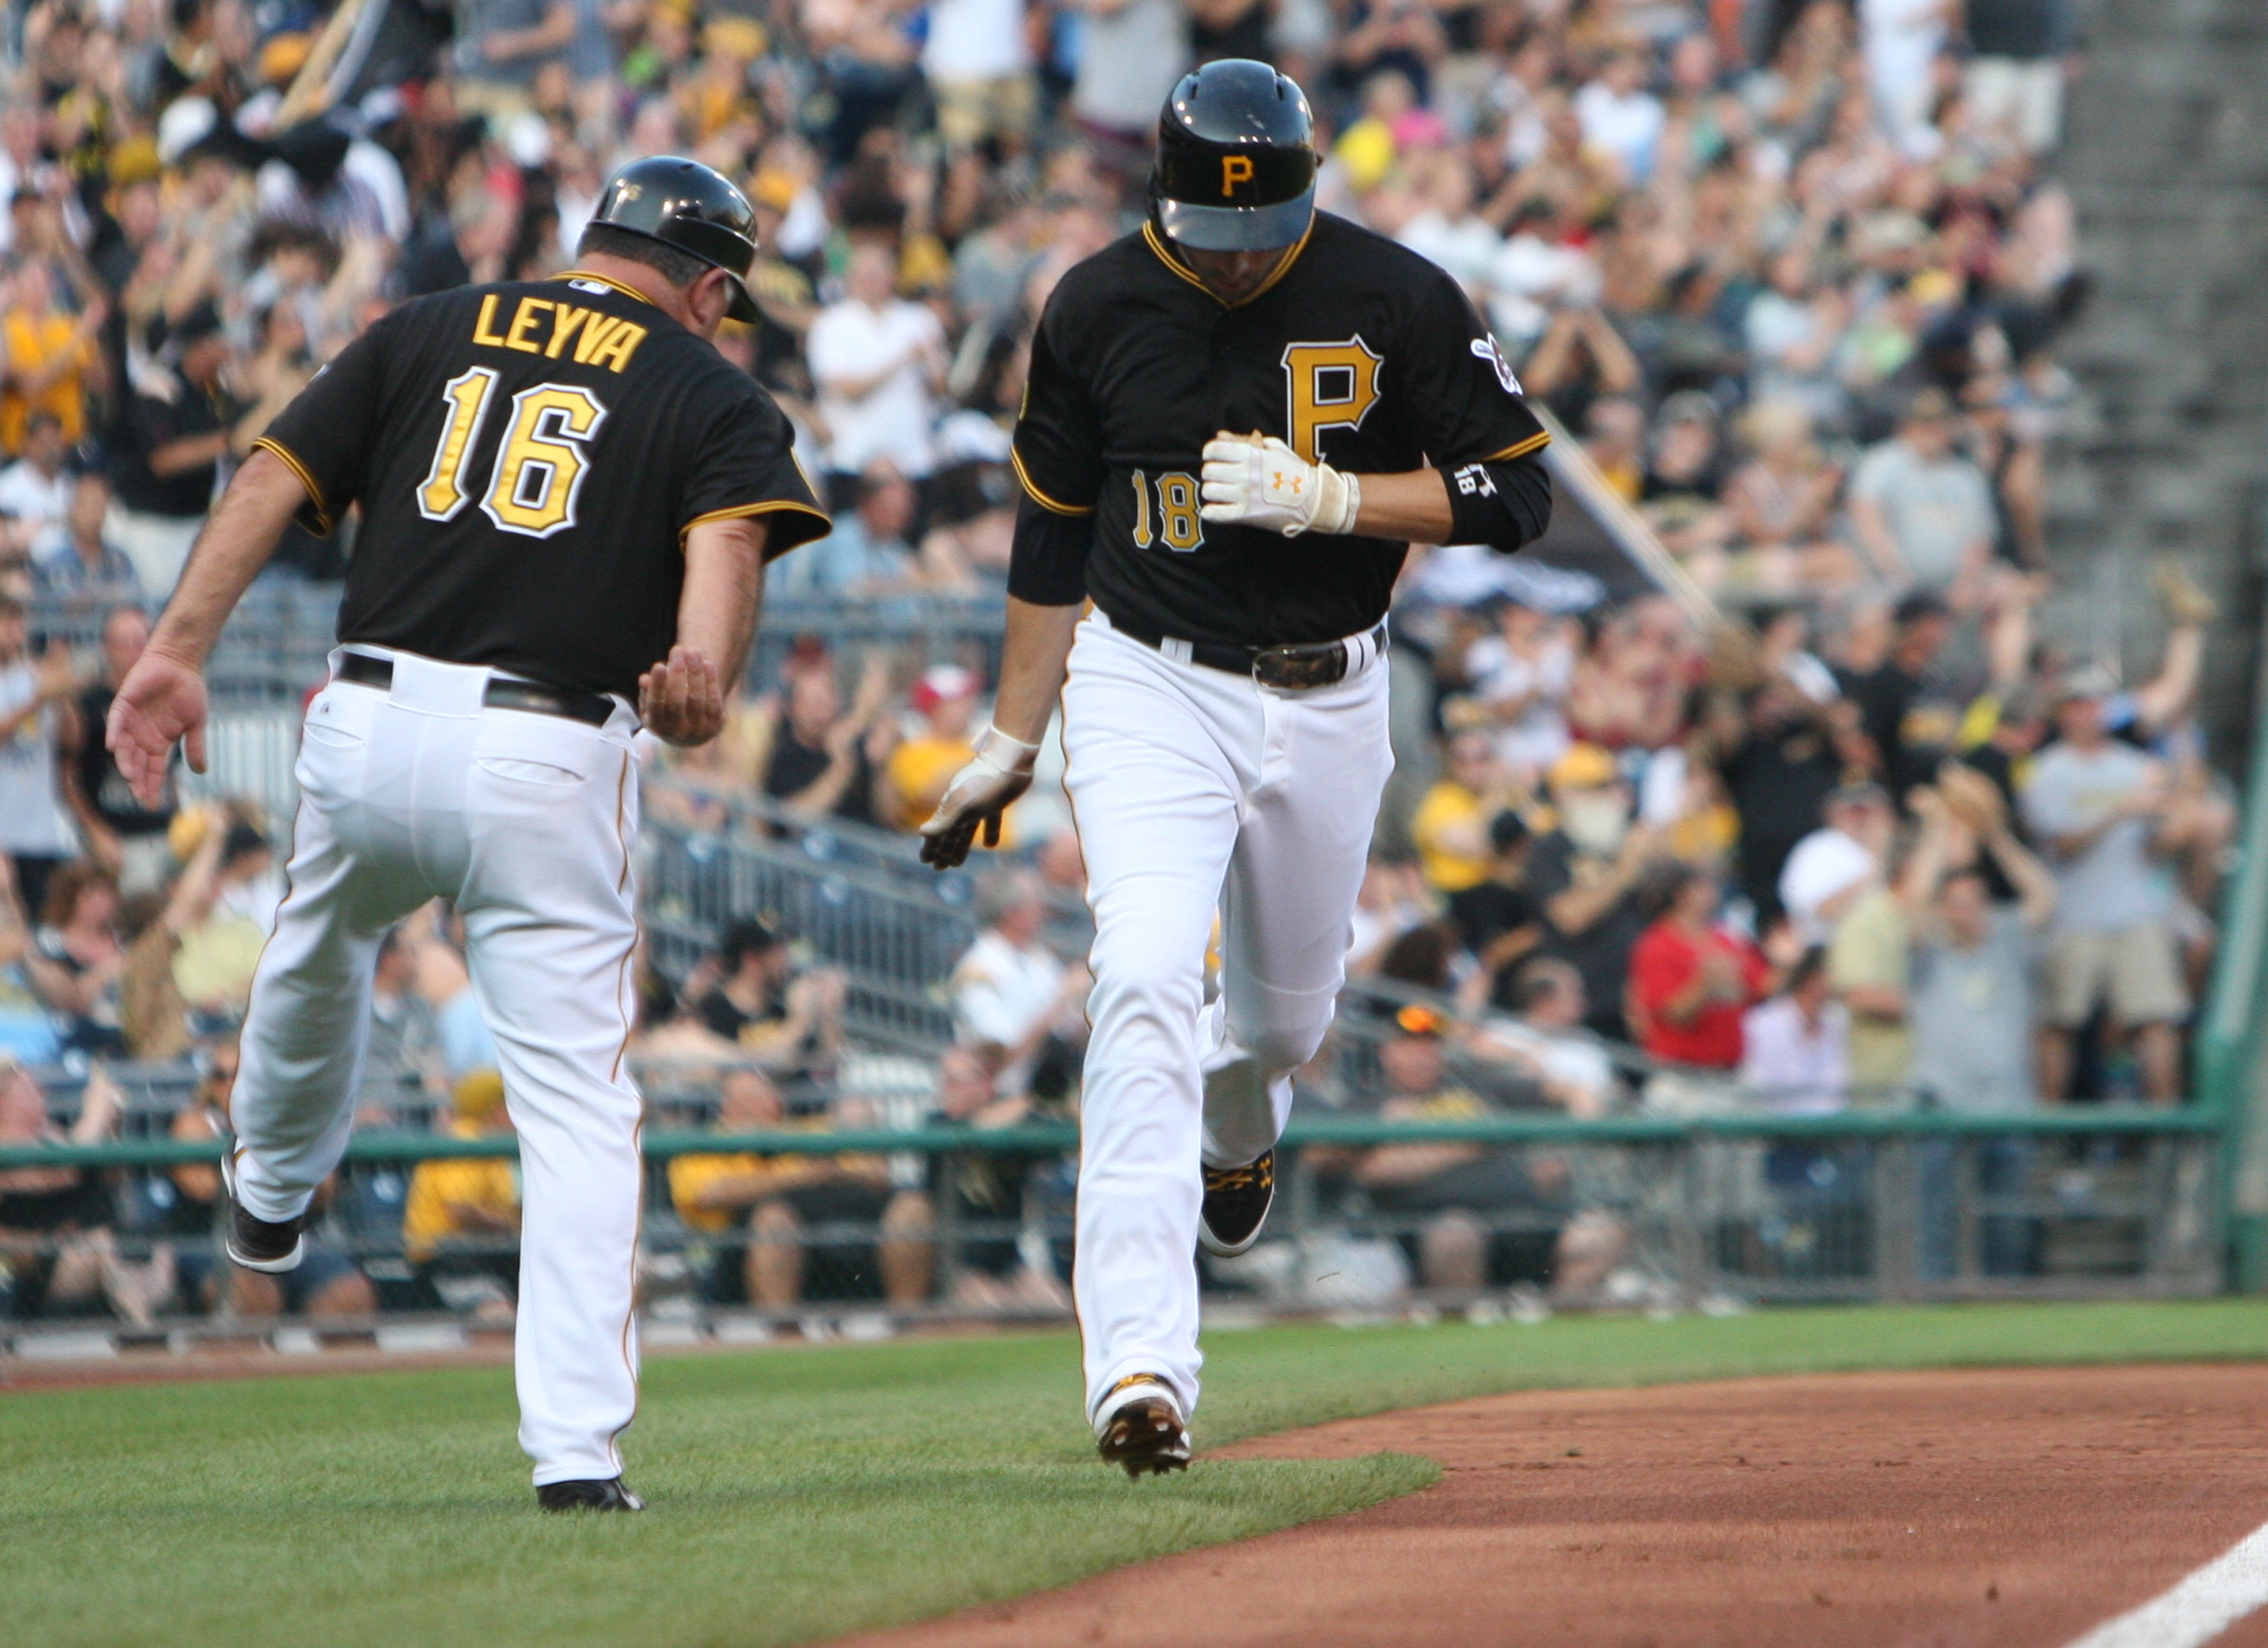 Pirates Agree to Terms With Nine Players; Walker, Alvarez, Worley Headed to Arbitration?